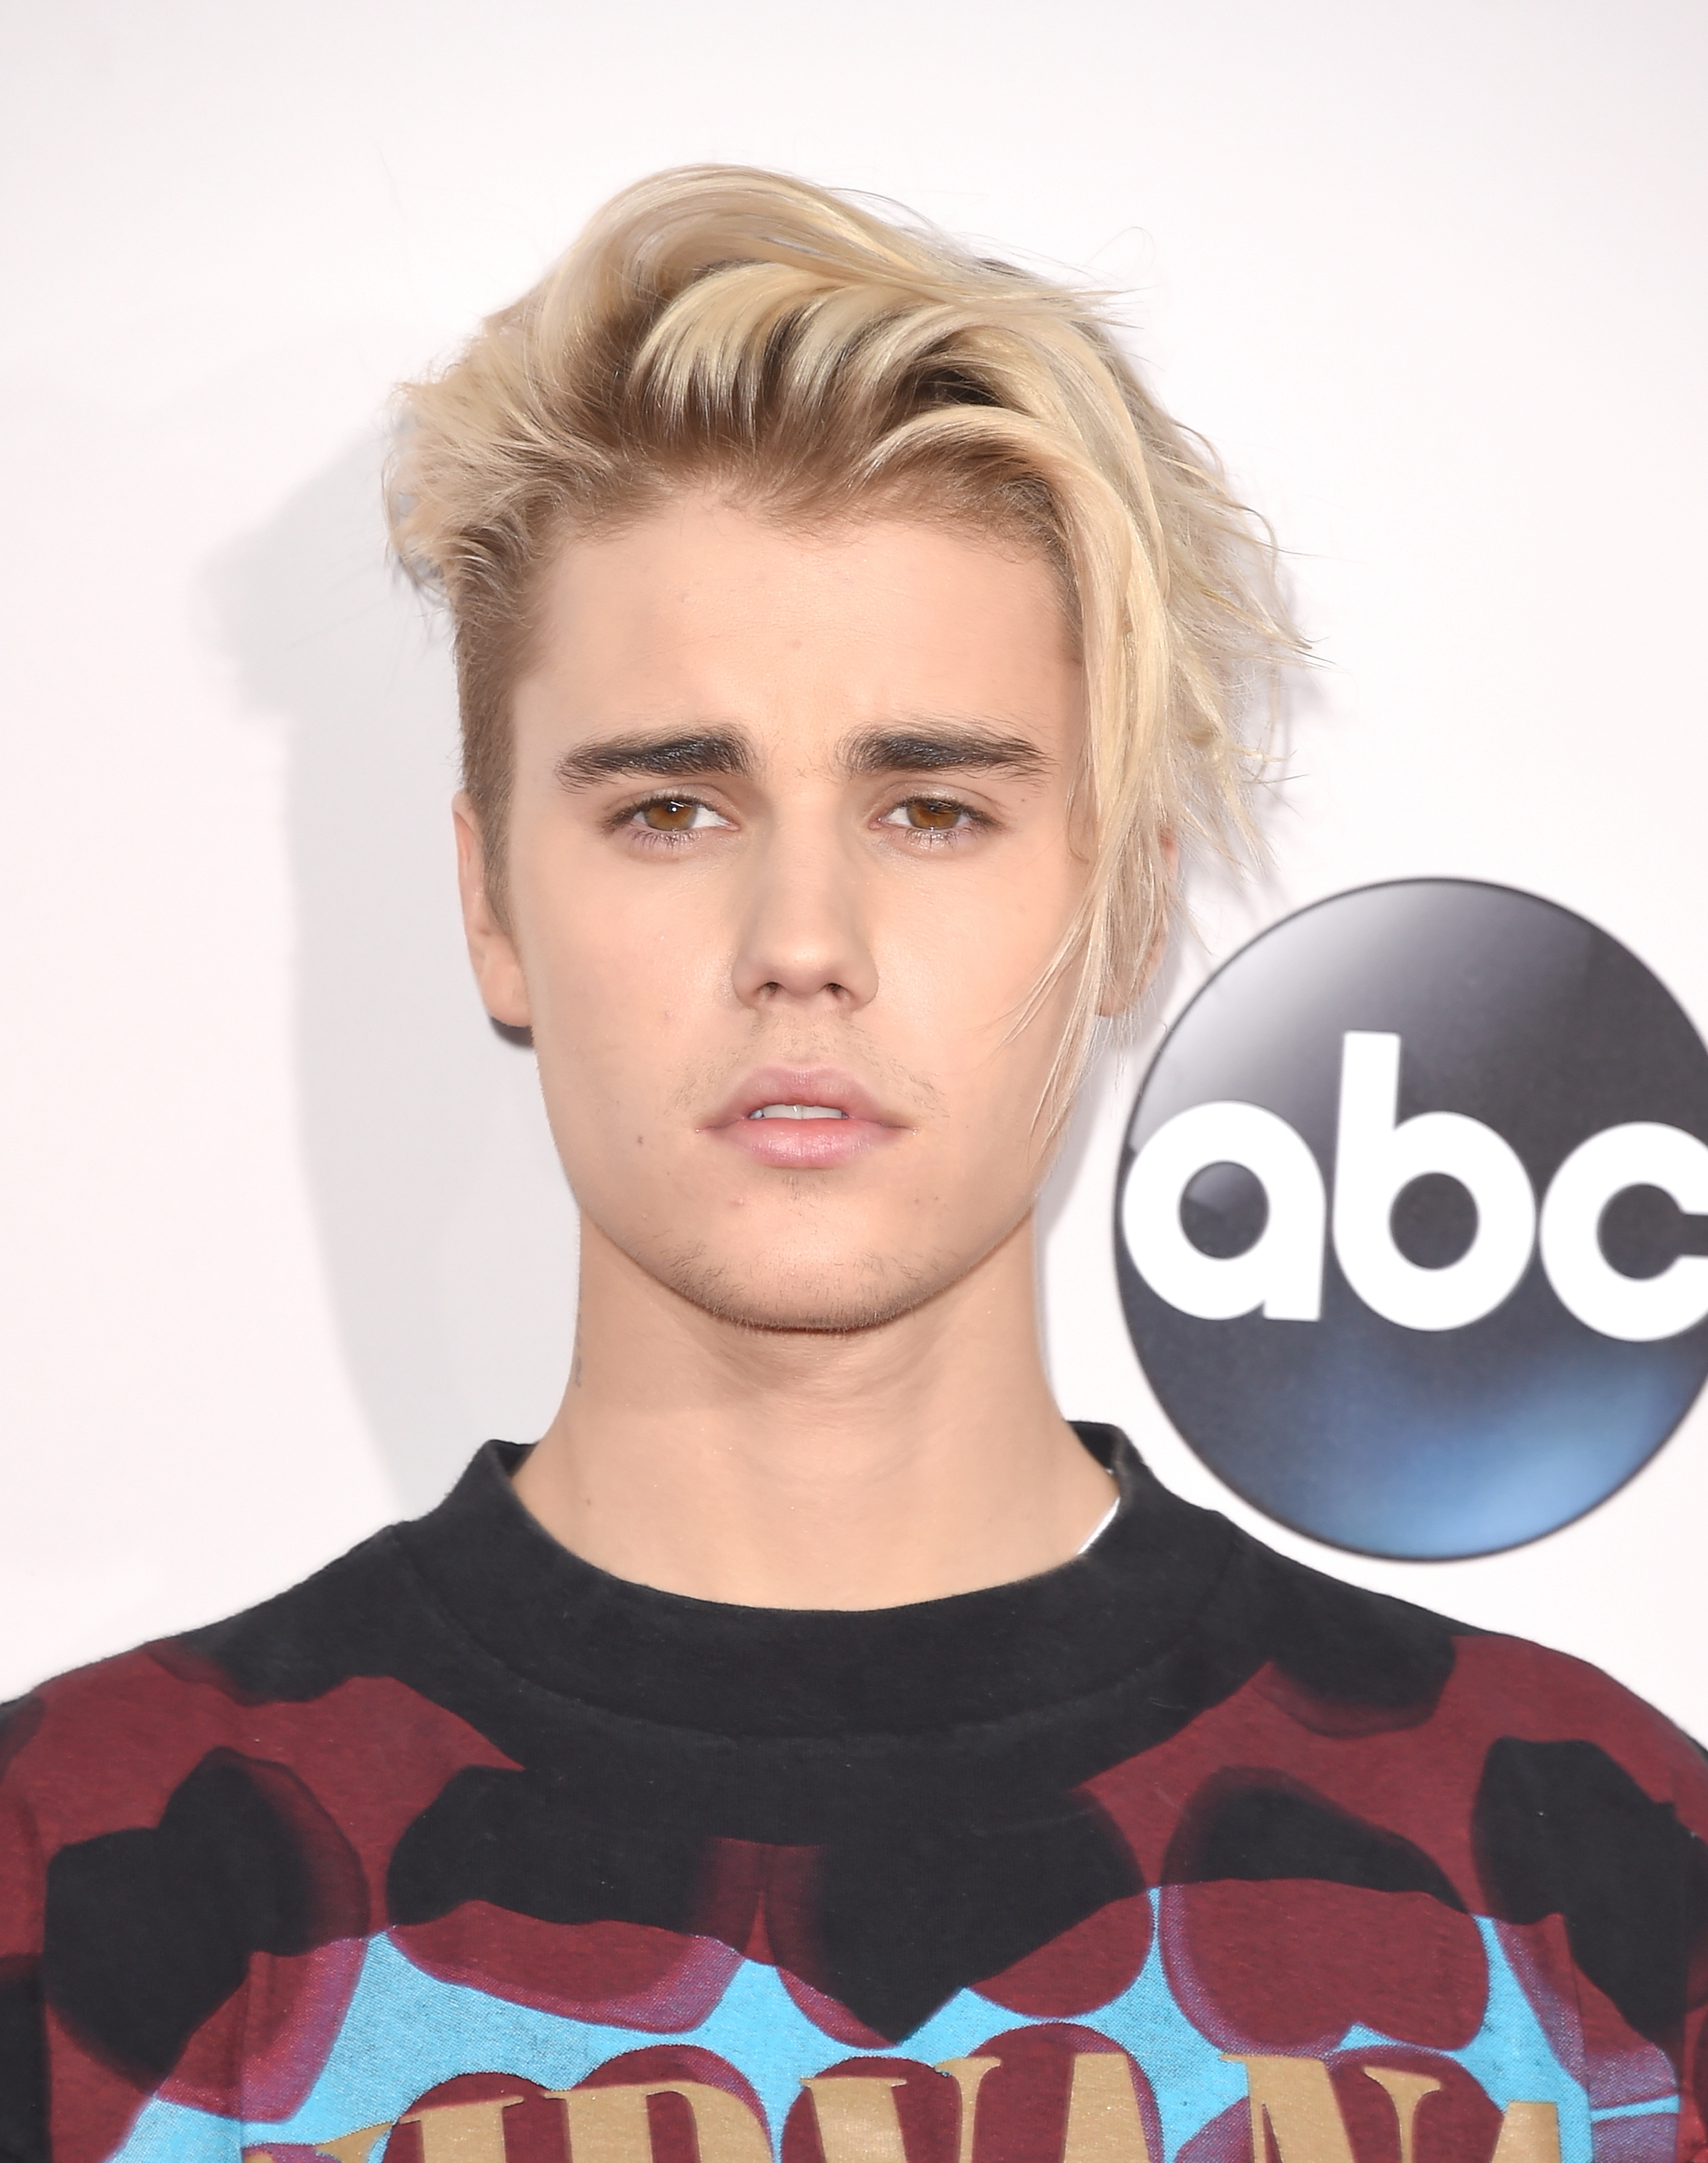 All Of Justin Biebers Hairstyles In 2015 Will Make You Belieb The Transformative Power Bleach PHOTOS